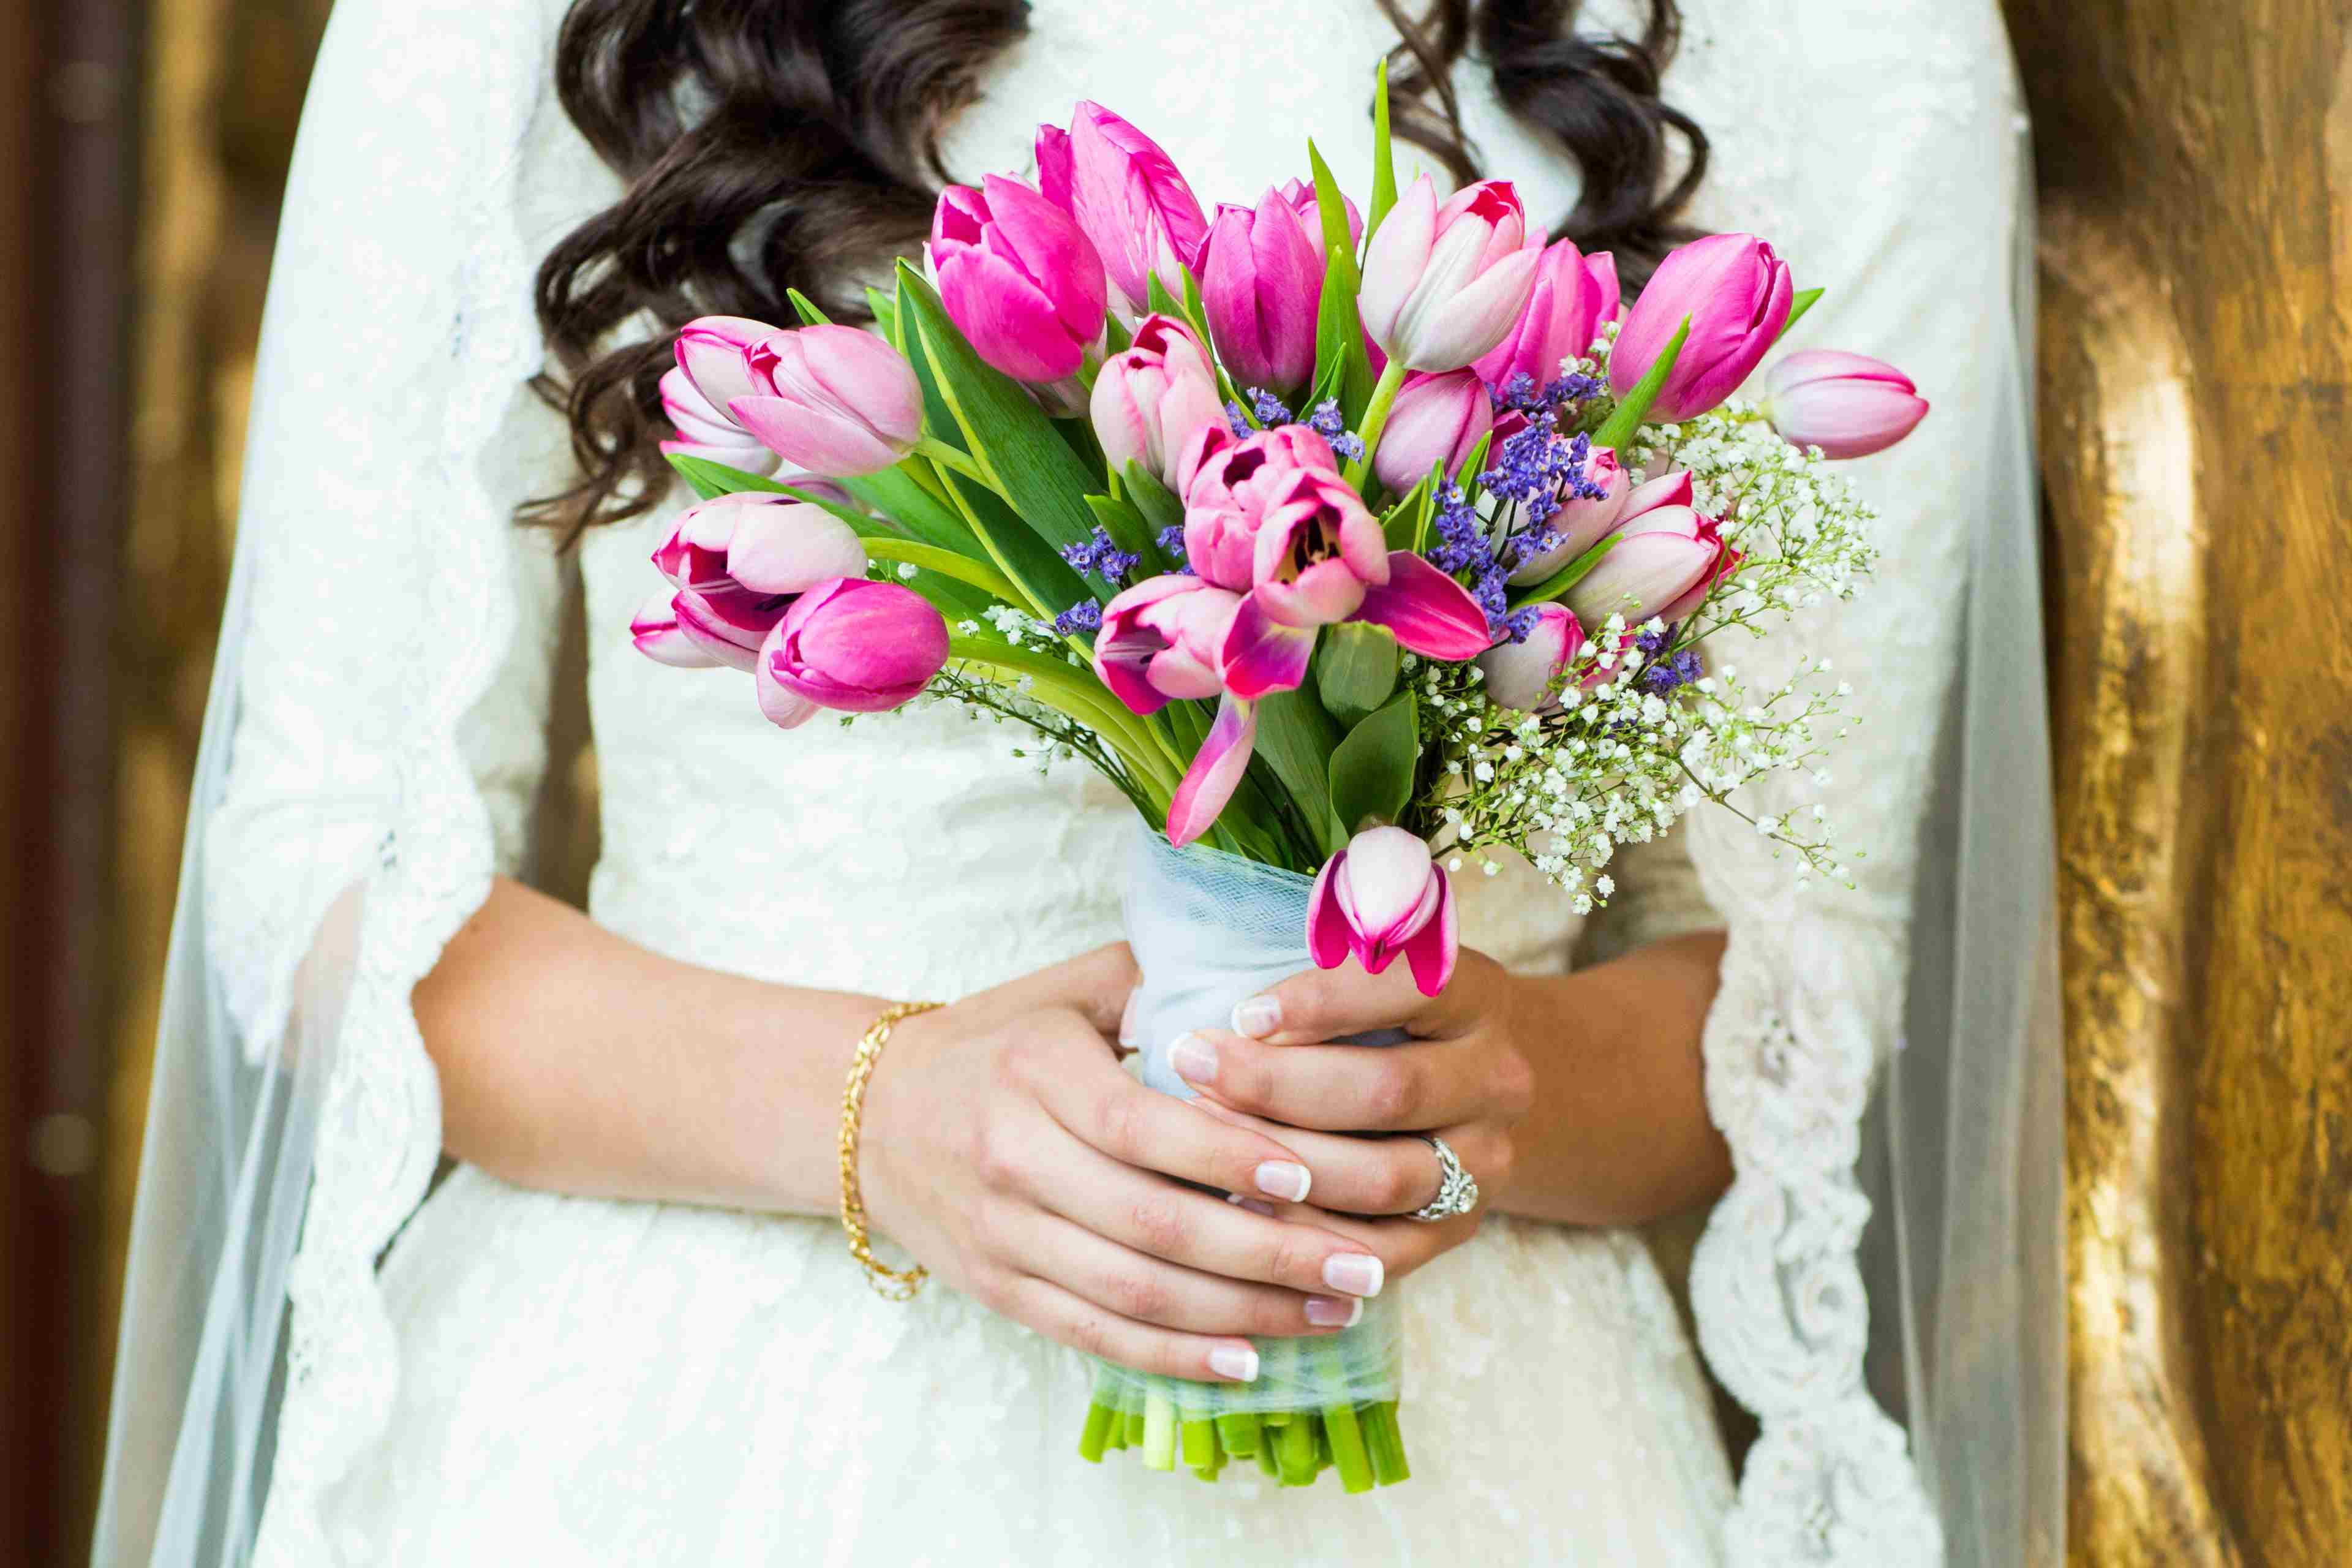 Wedding hand bouquets wedding decorators and flowers wedding bride hand bouquet flowers 01 izmirmasajfo